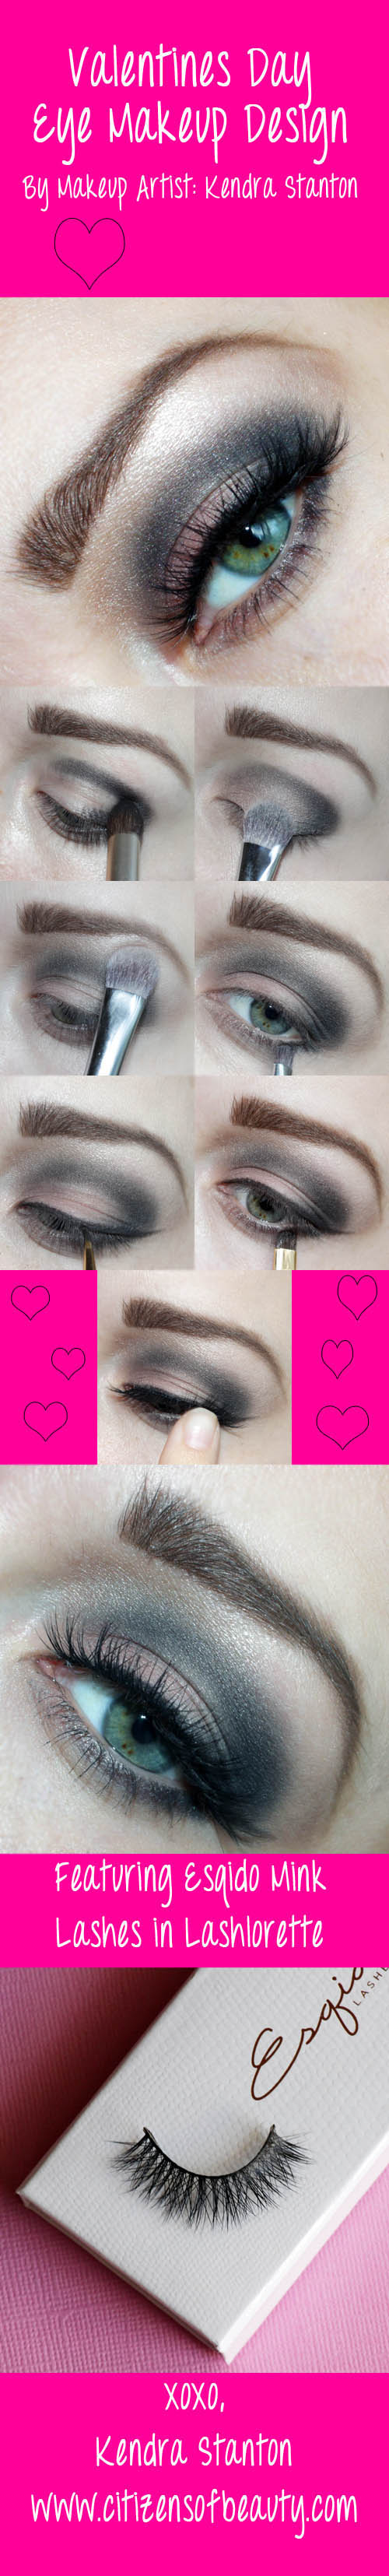 Valentines Day Eye Look 2: Featuring Esqido False Lashes